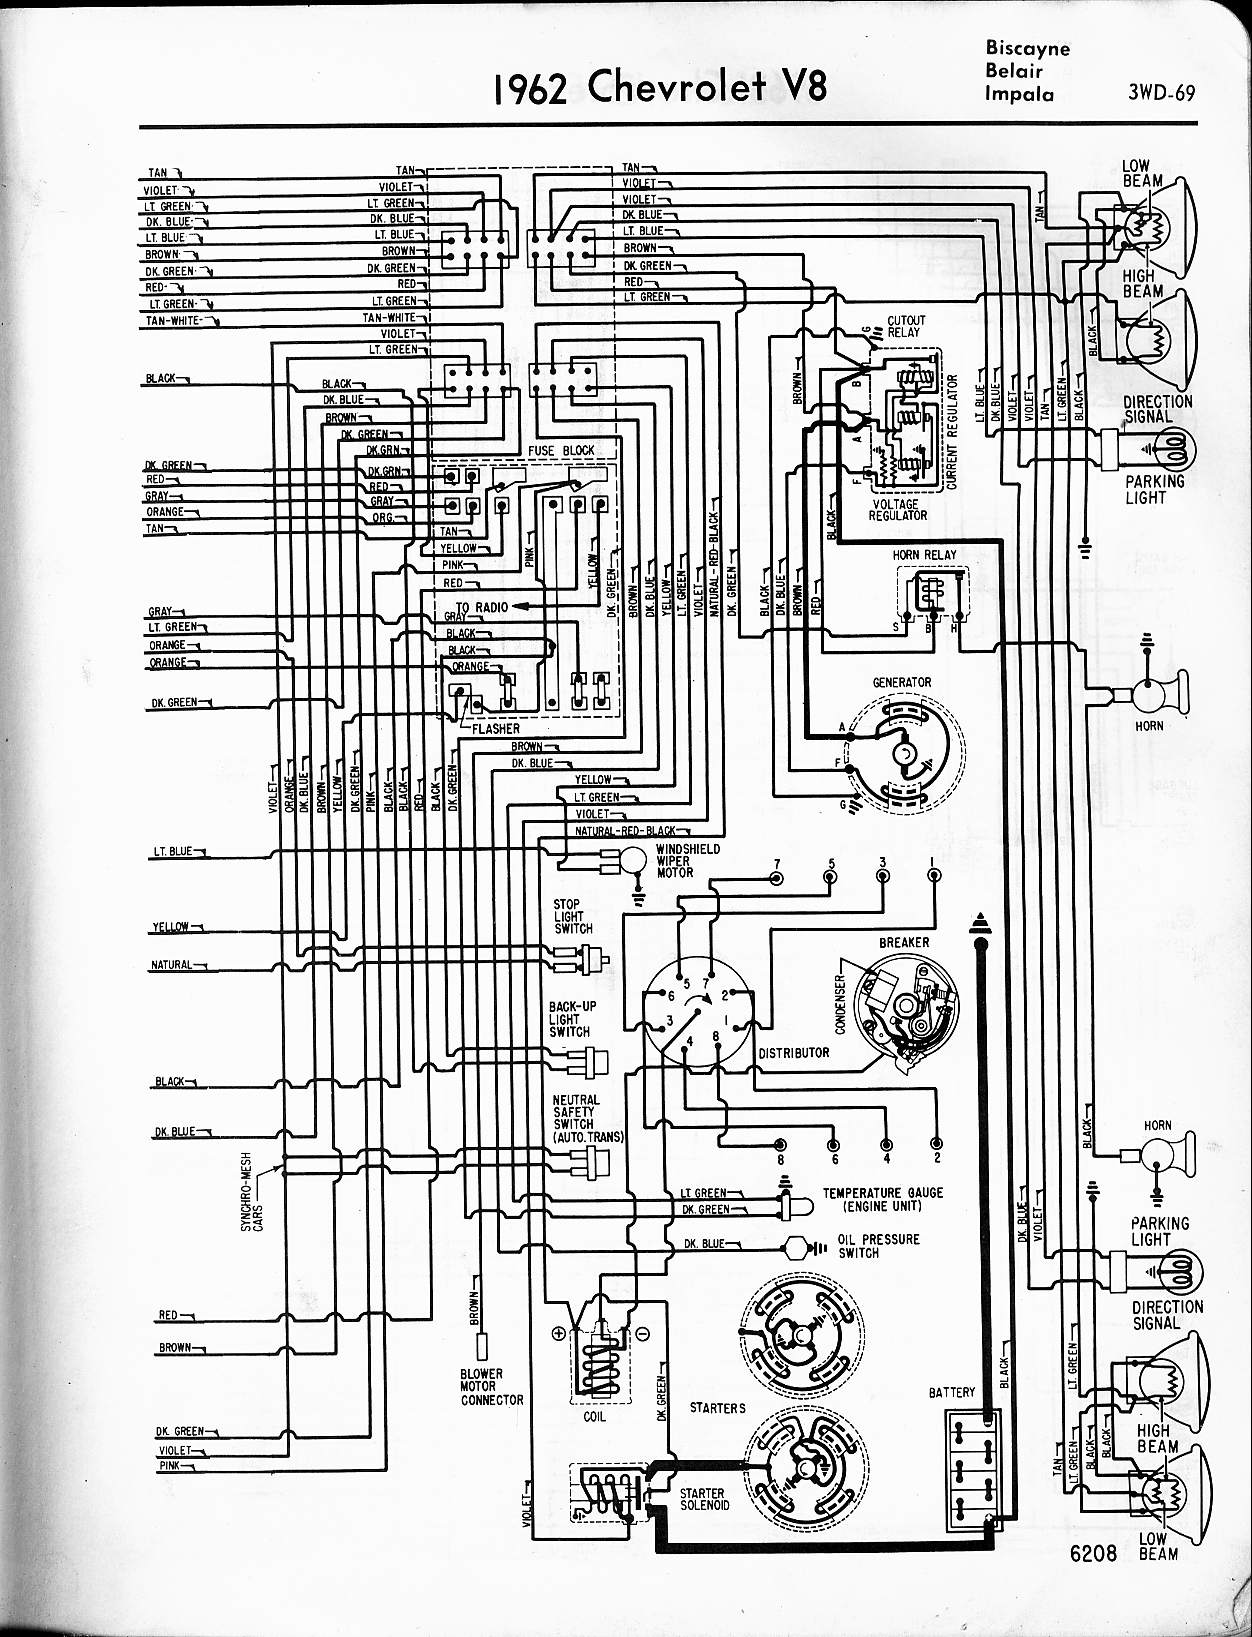 MWireChev62_3WD 069 1962 chevrolet wiring diagram manual chevytalk free 1965 corvair wiring diagram at soozxer.org